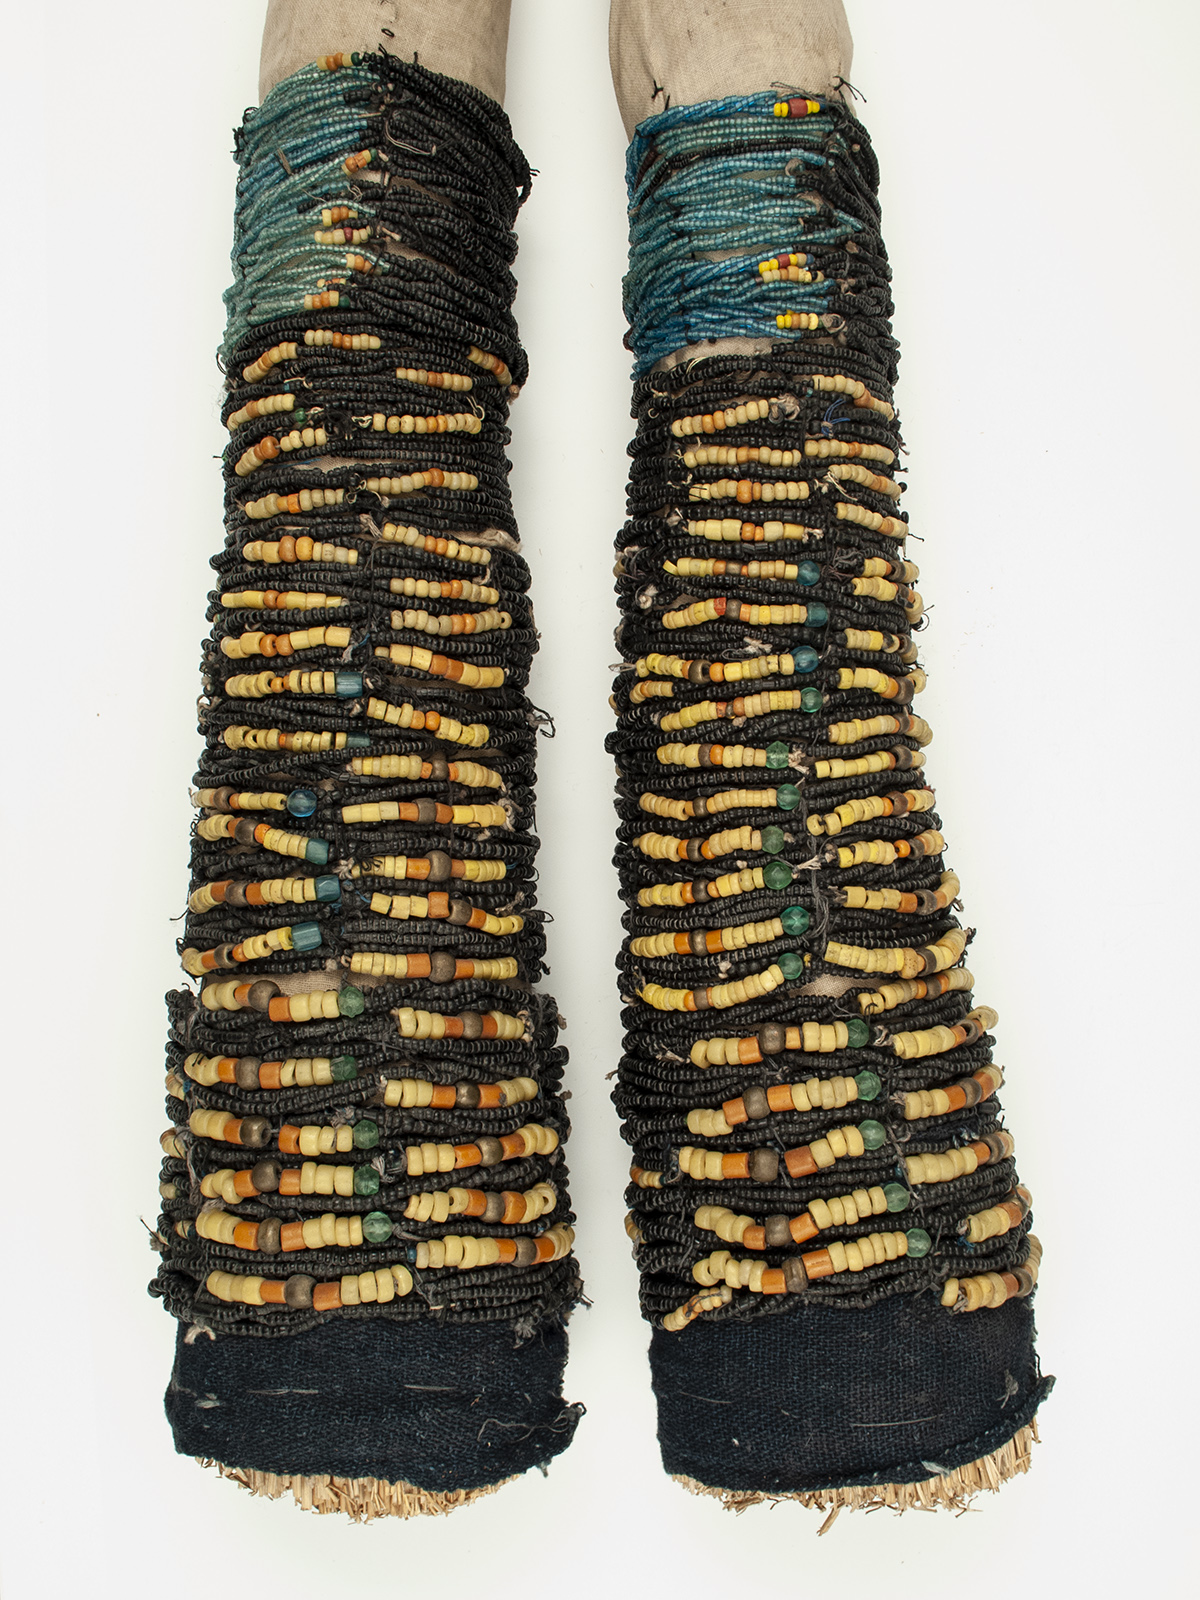 Pair of Beaded Armbands